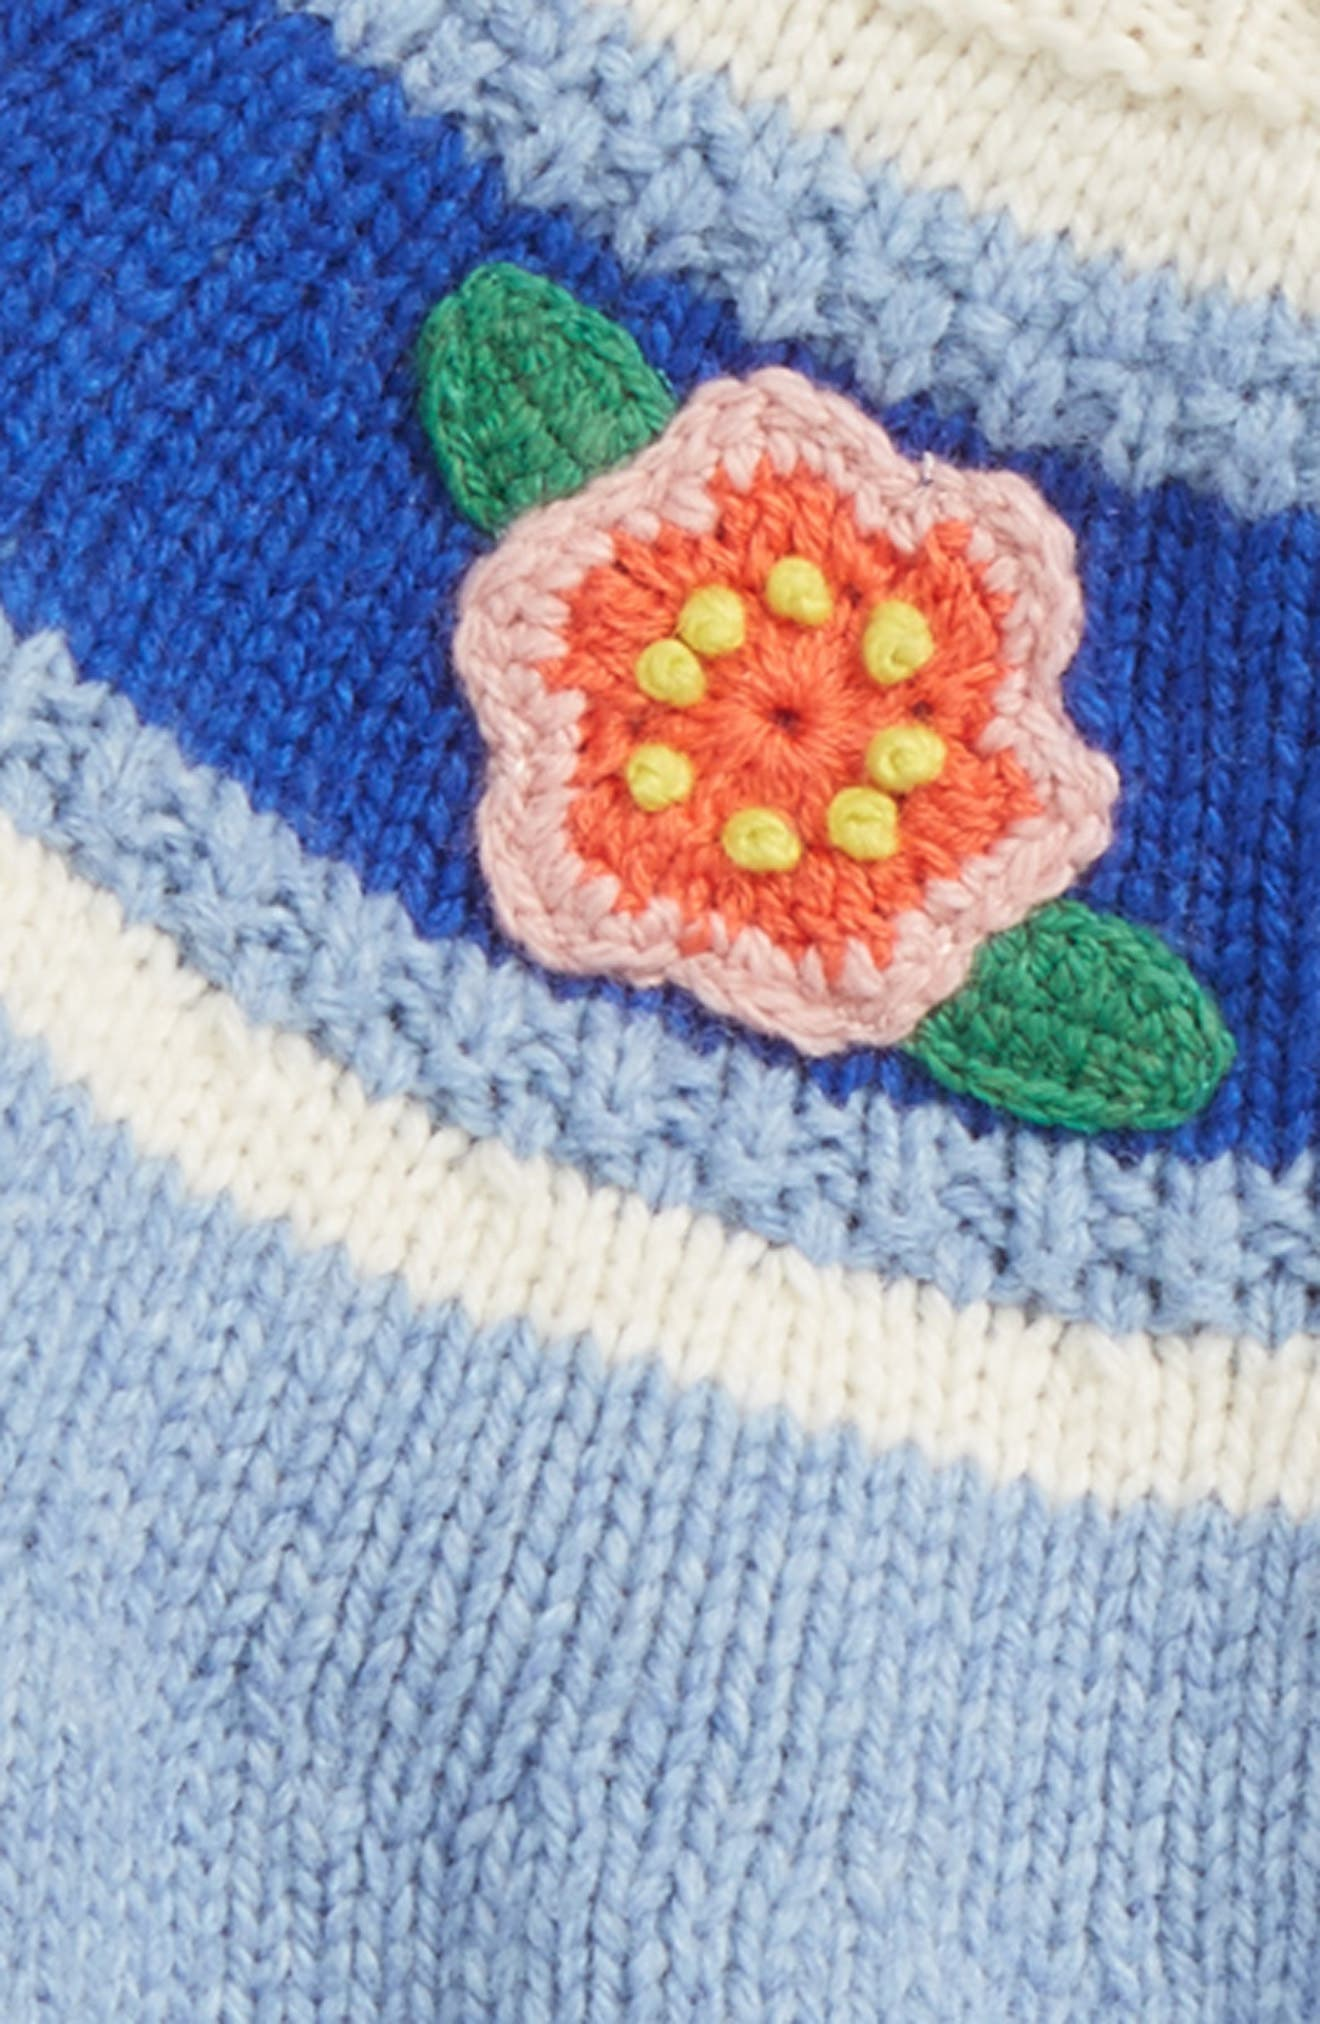 Crochet Flower Cardigan,                             Alternate thumbnail 2, color,                             424